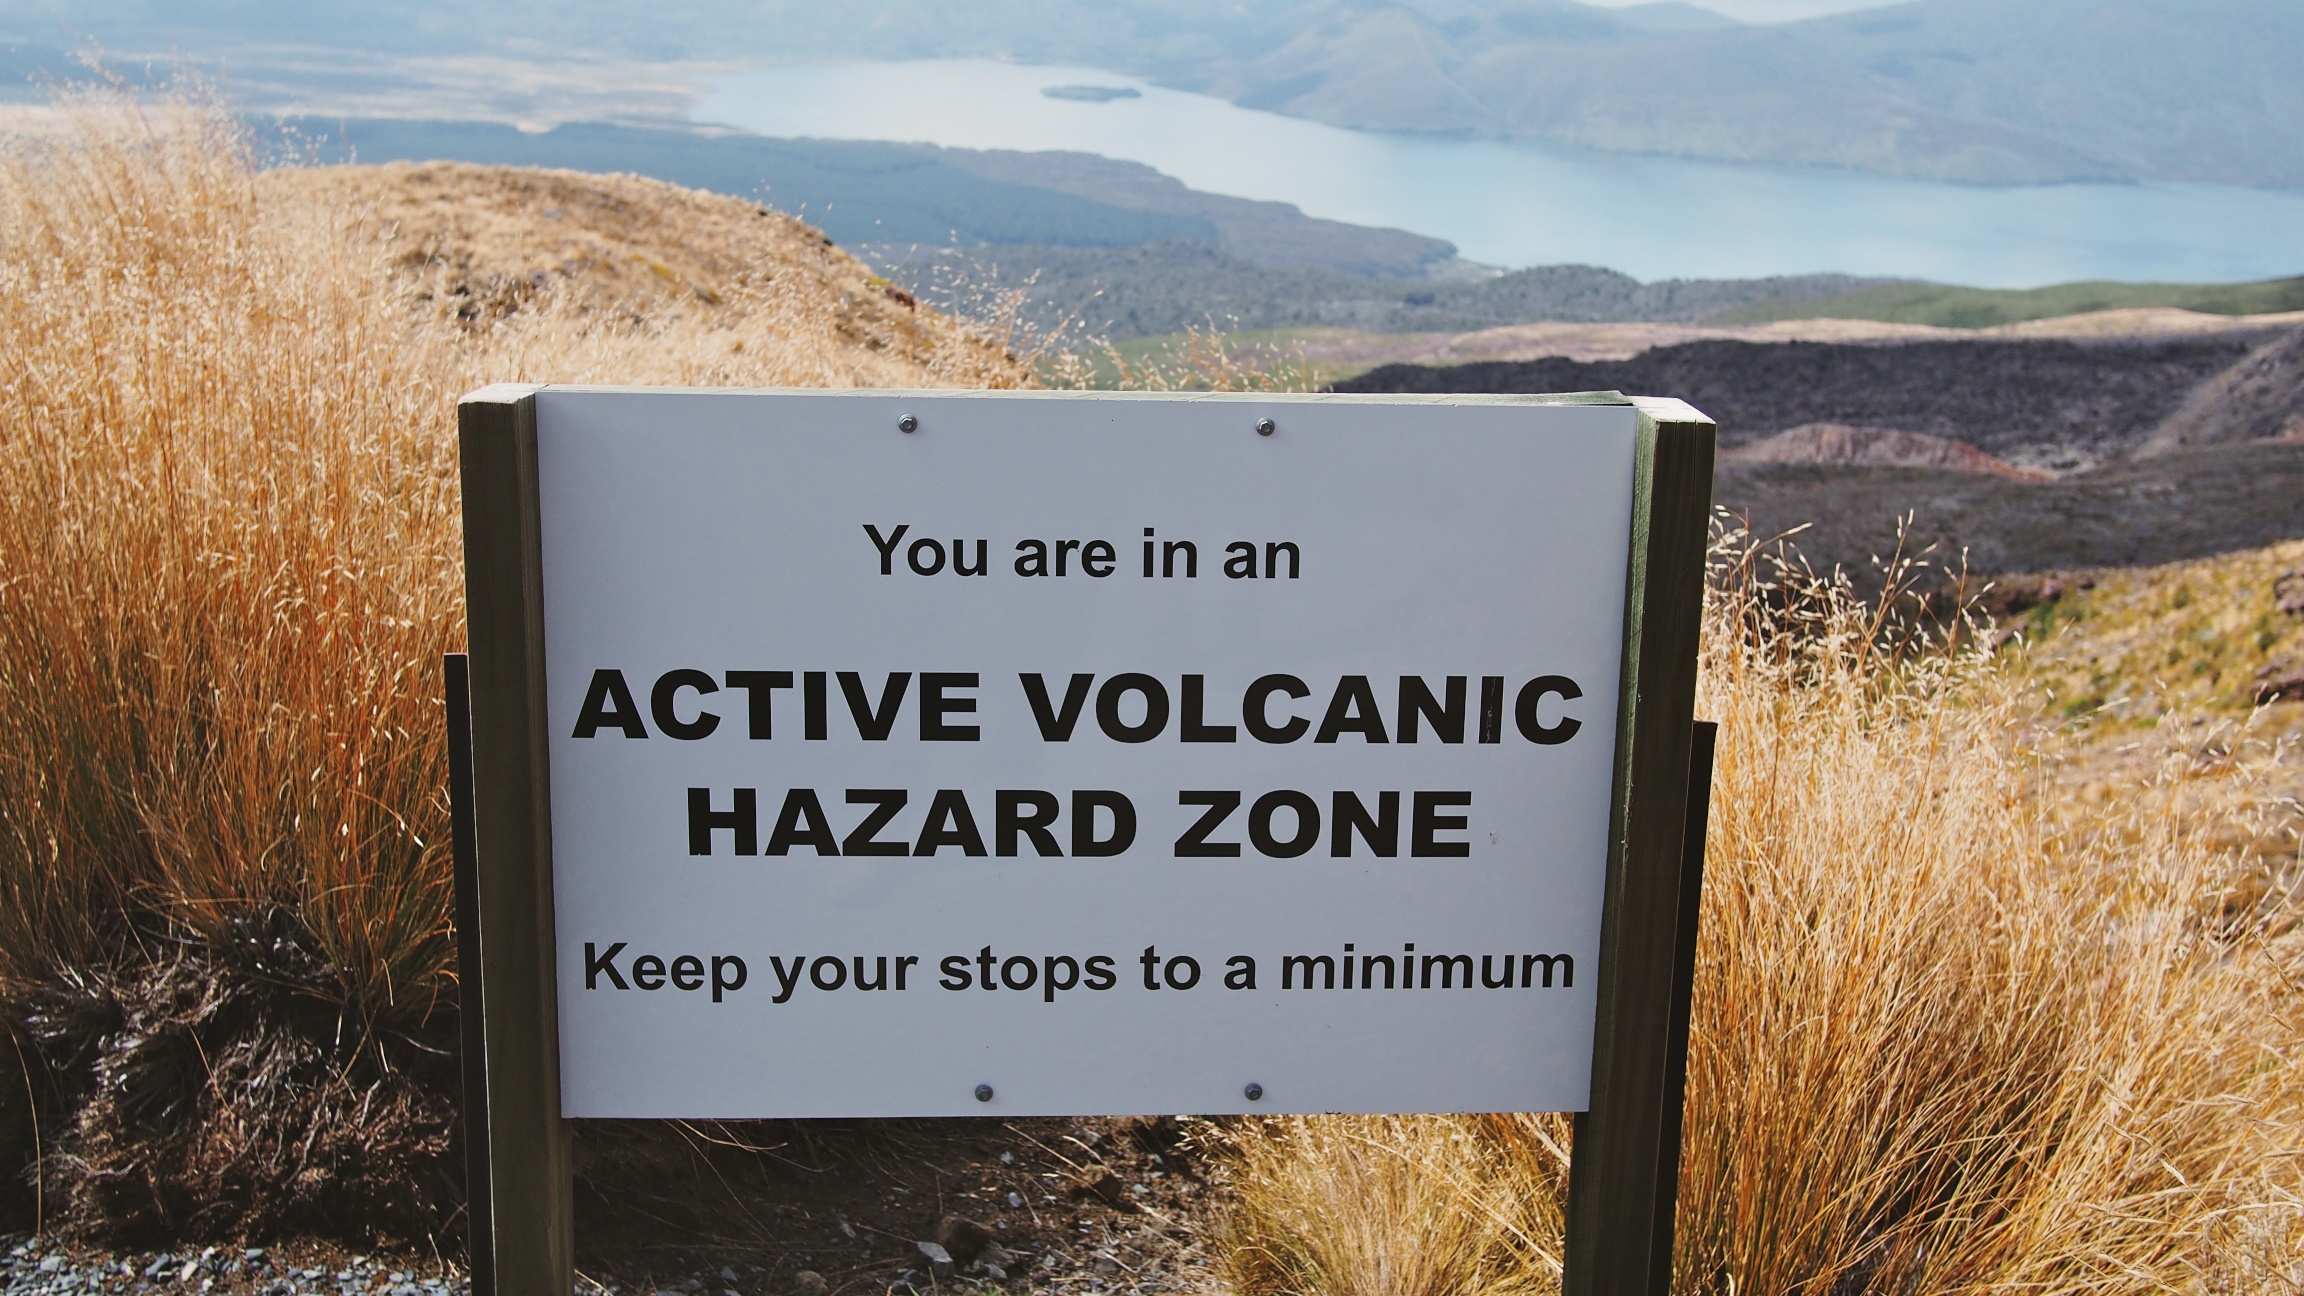 Did you forget about the volcanoes yet?